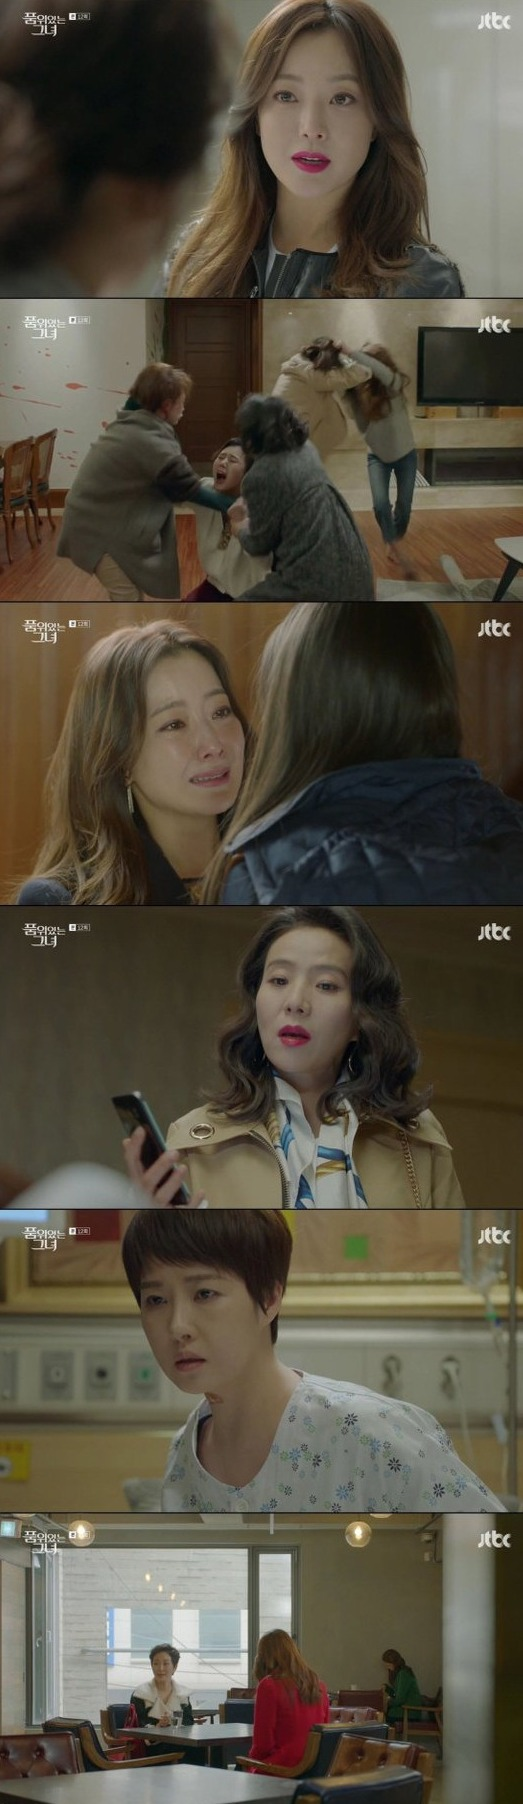 [Spoiler] Added episodes 11 and 12 captures for the Korean drama 'Woman of Dignity'